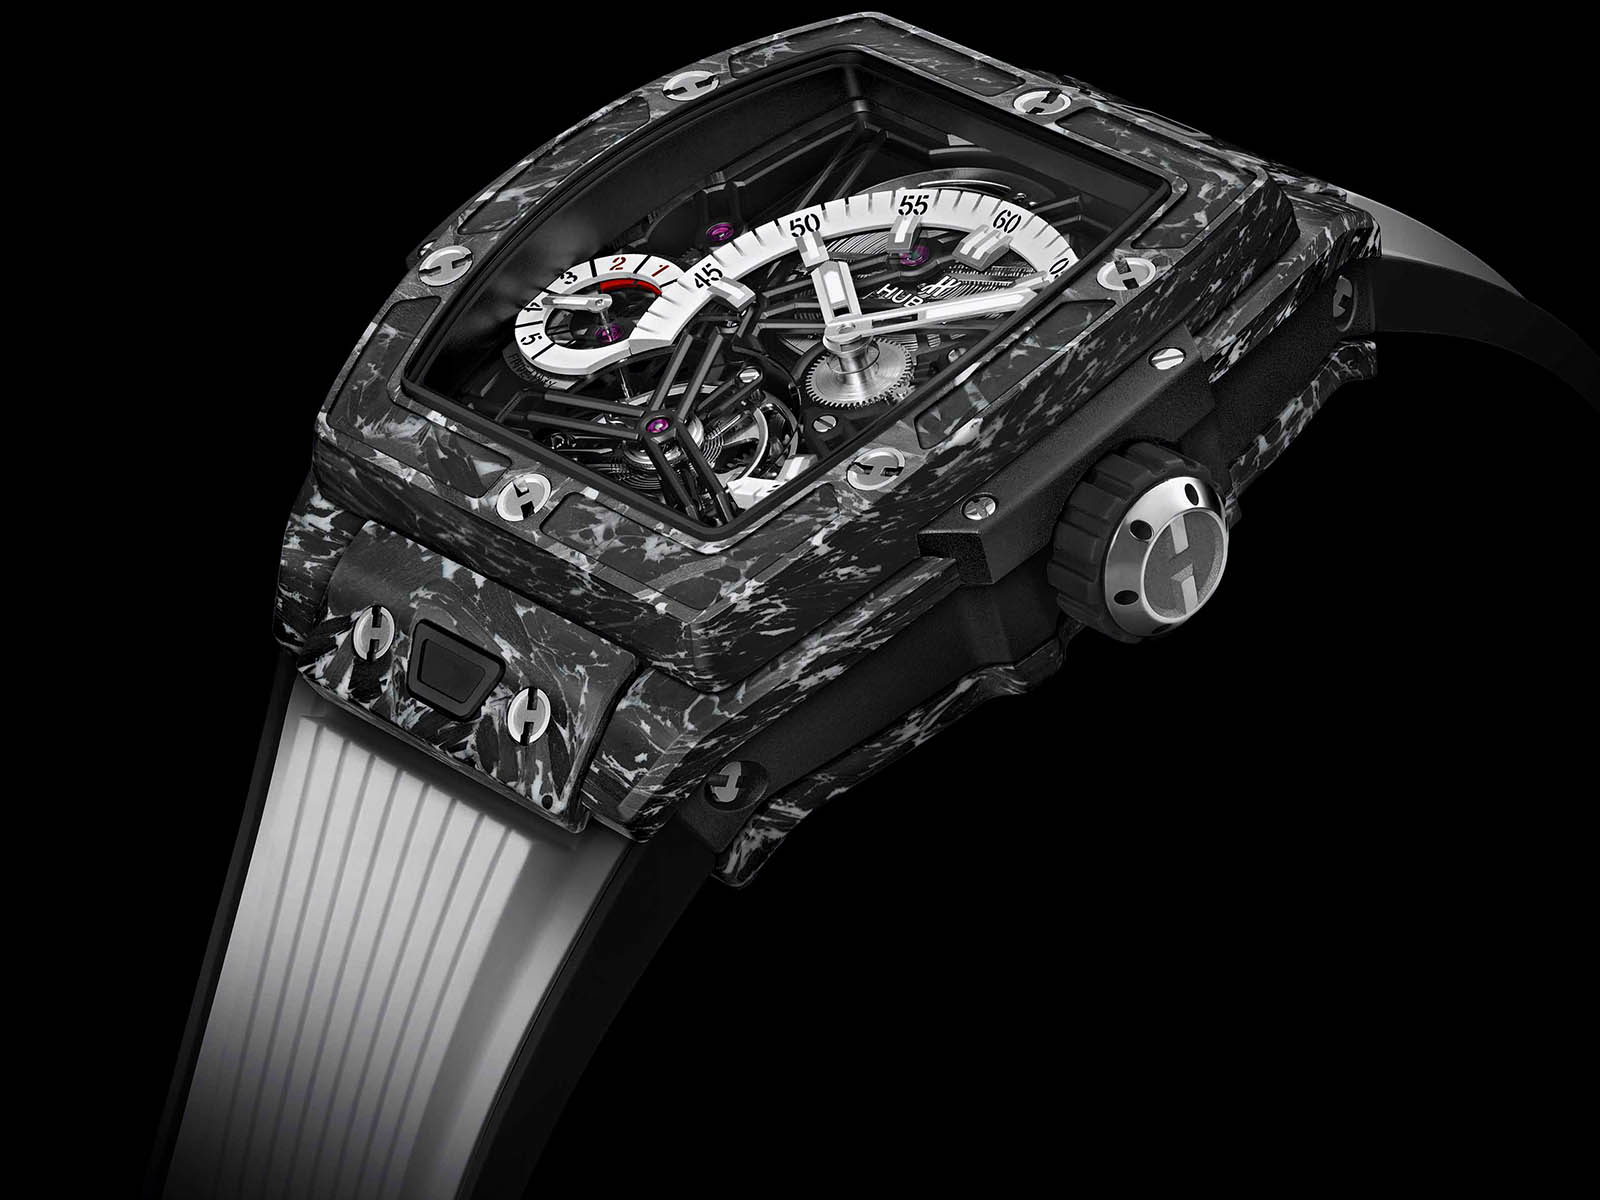 hublot-spirit-of-big-bang-tourbillon-5-day-power-reserve-carbon-white-2.jpg